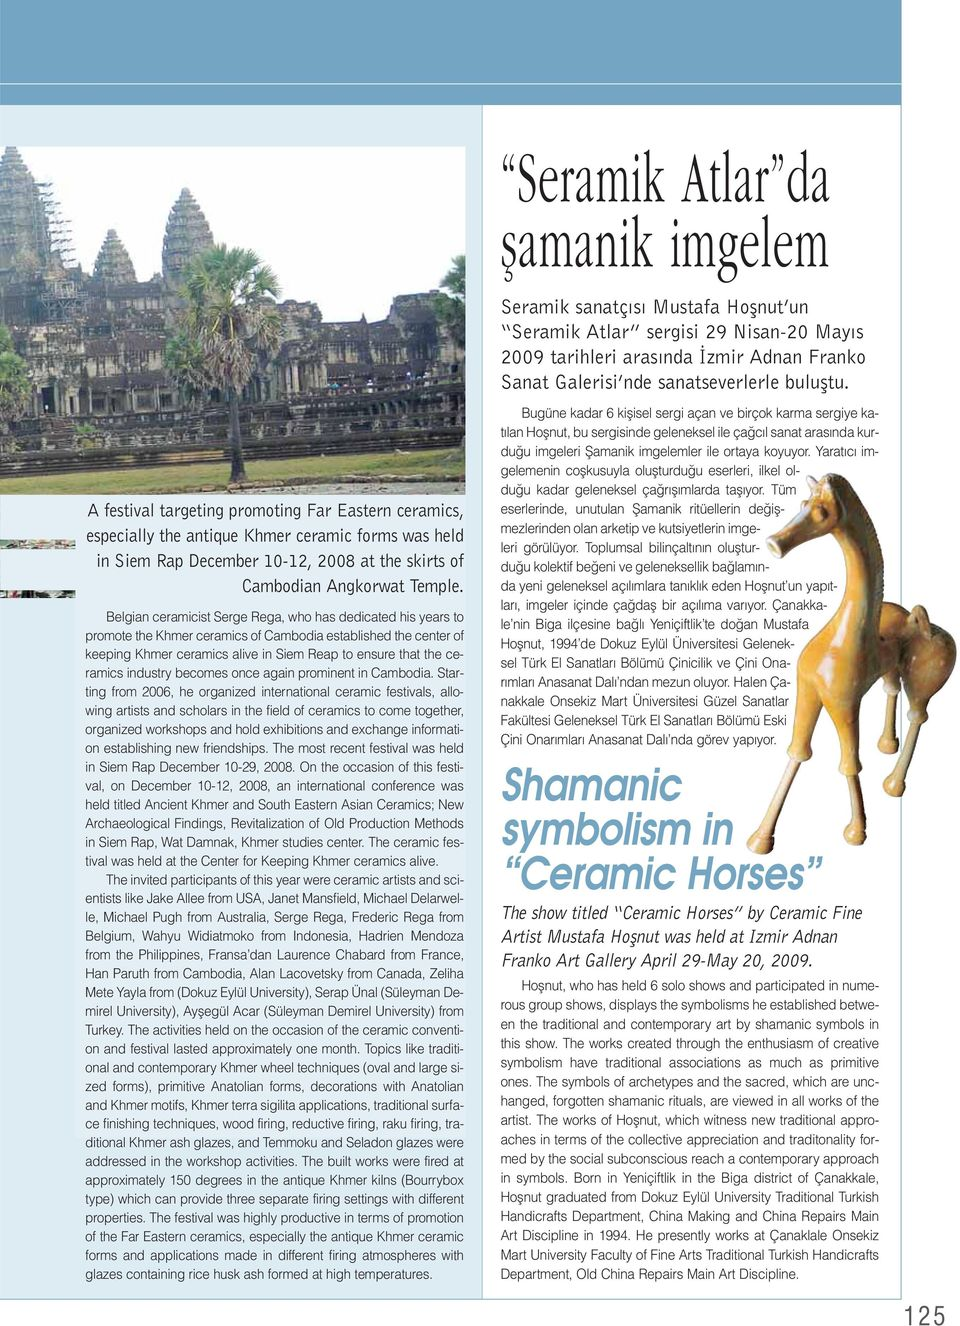 Belgian ceramicist Serge Rega, who has dedicated his years to promote the Khmer ceramics of Cambodia established the center of keeping Khmer ceramics alive in Siem Reap to ensure that the ceramics